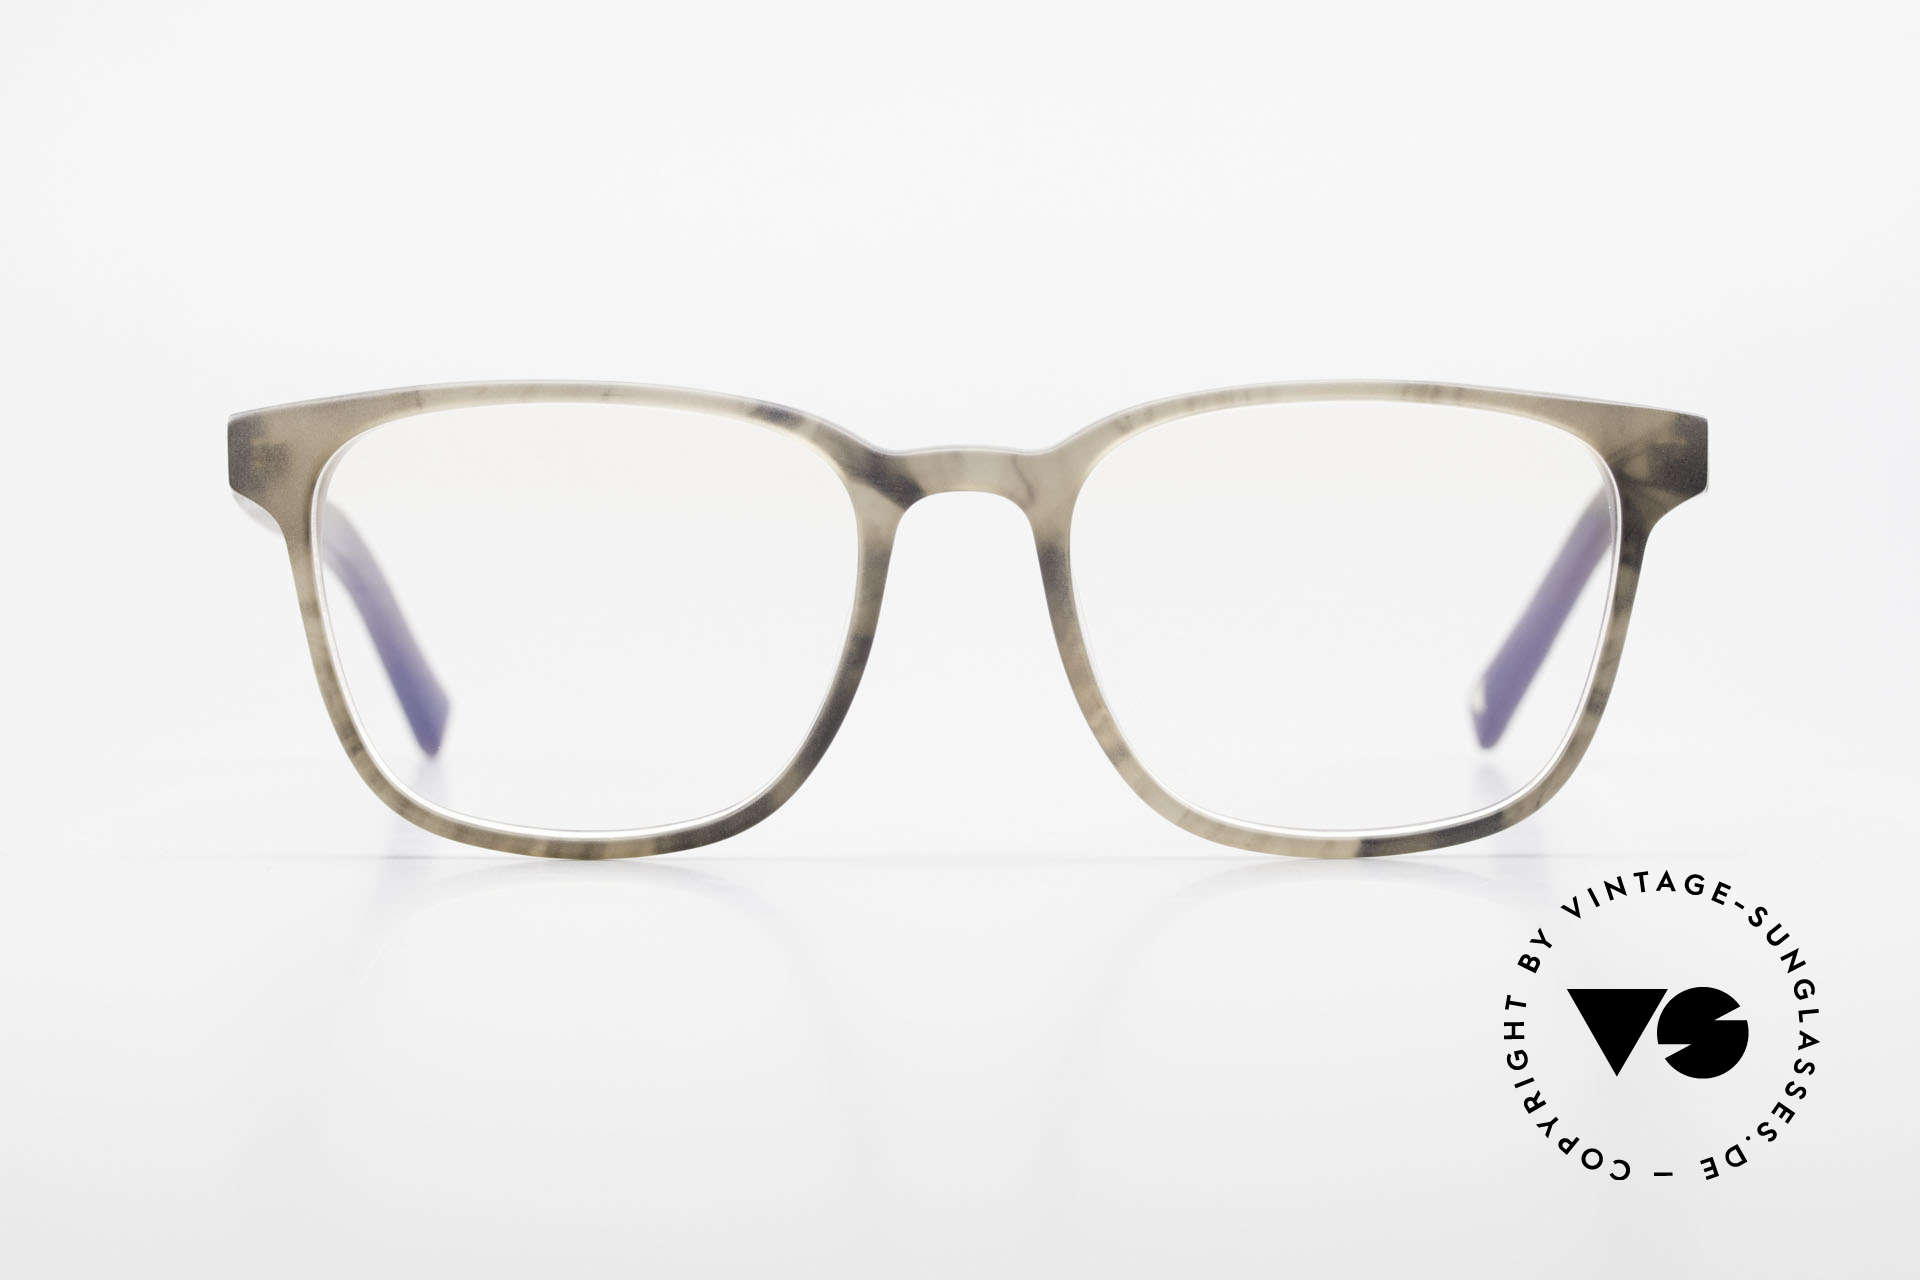 Kerbholz Ludwig Men's Wood Glasses Blackwood, smokey-grey front with temples made from Blackwood, Made for Men